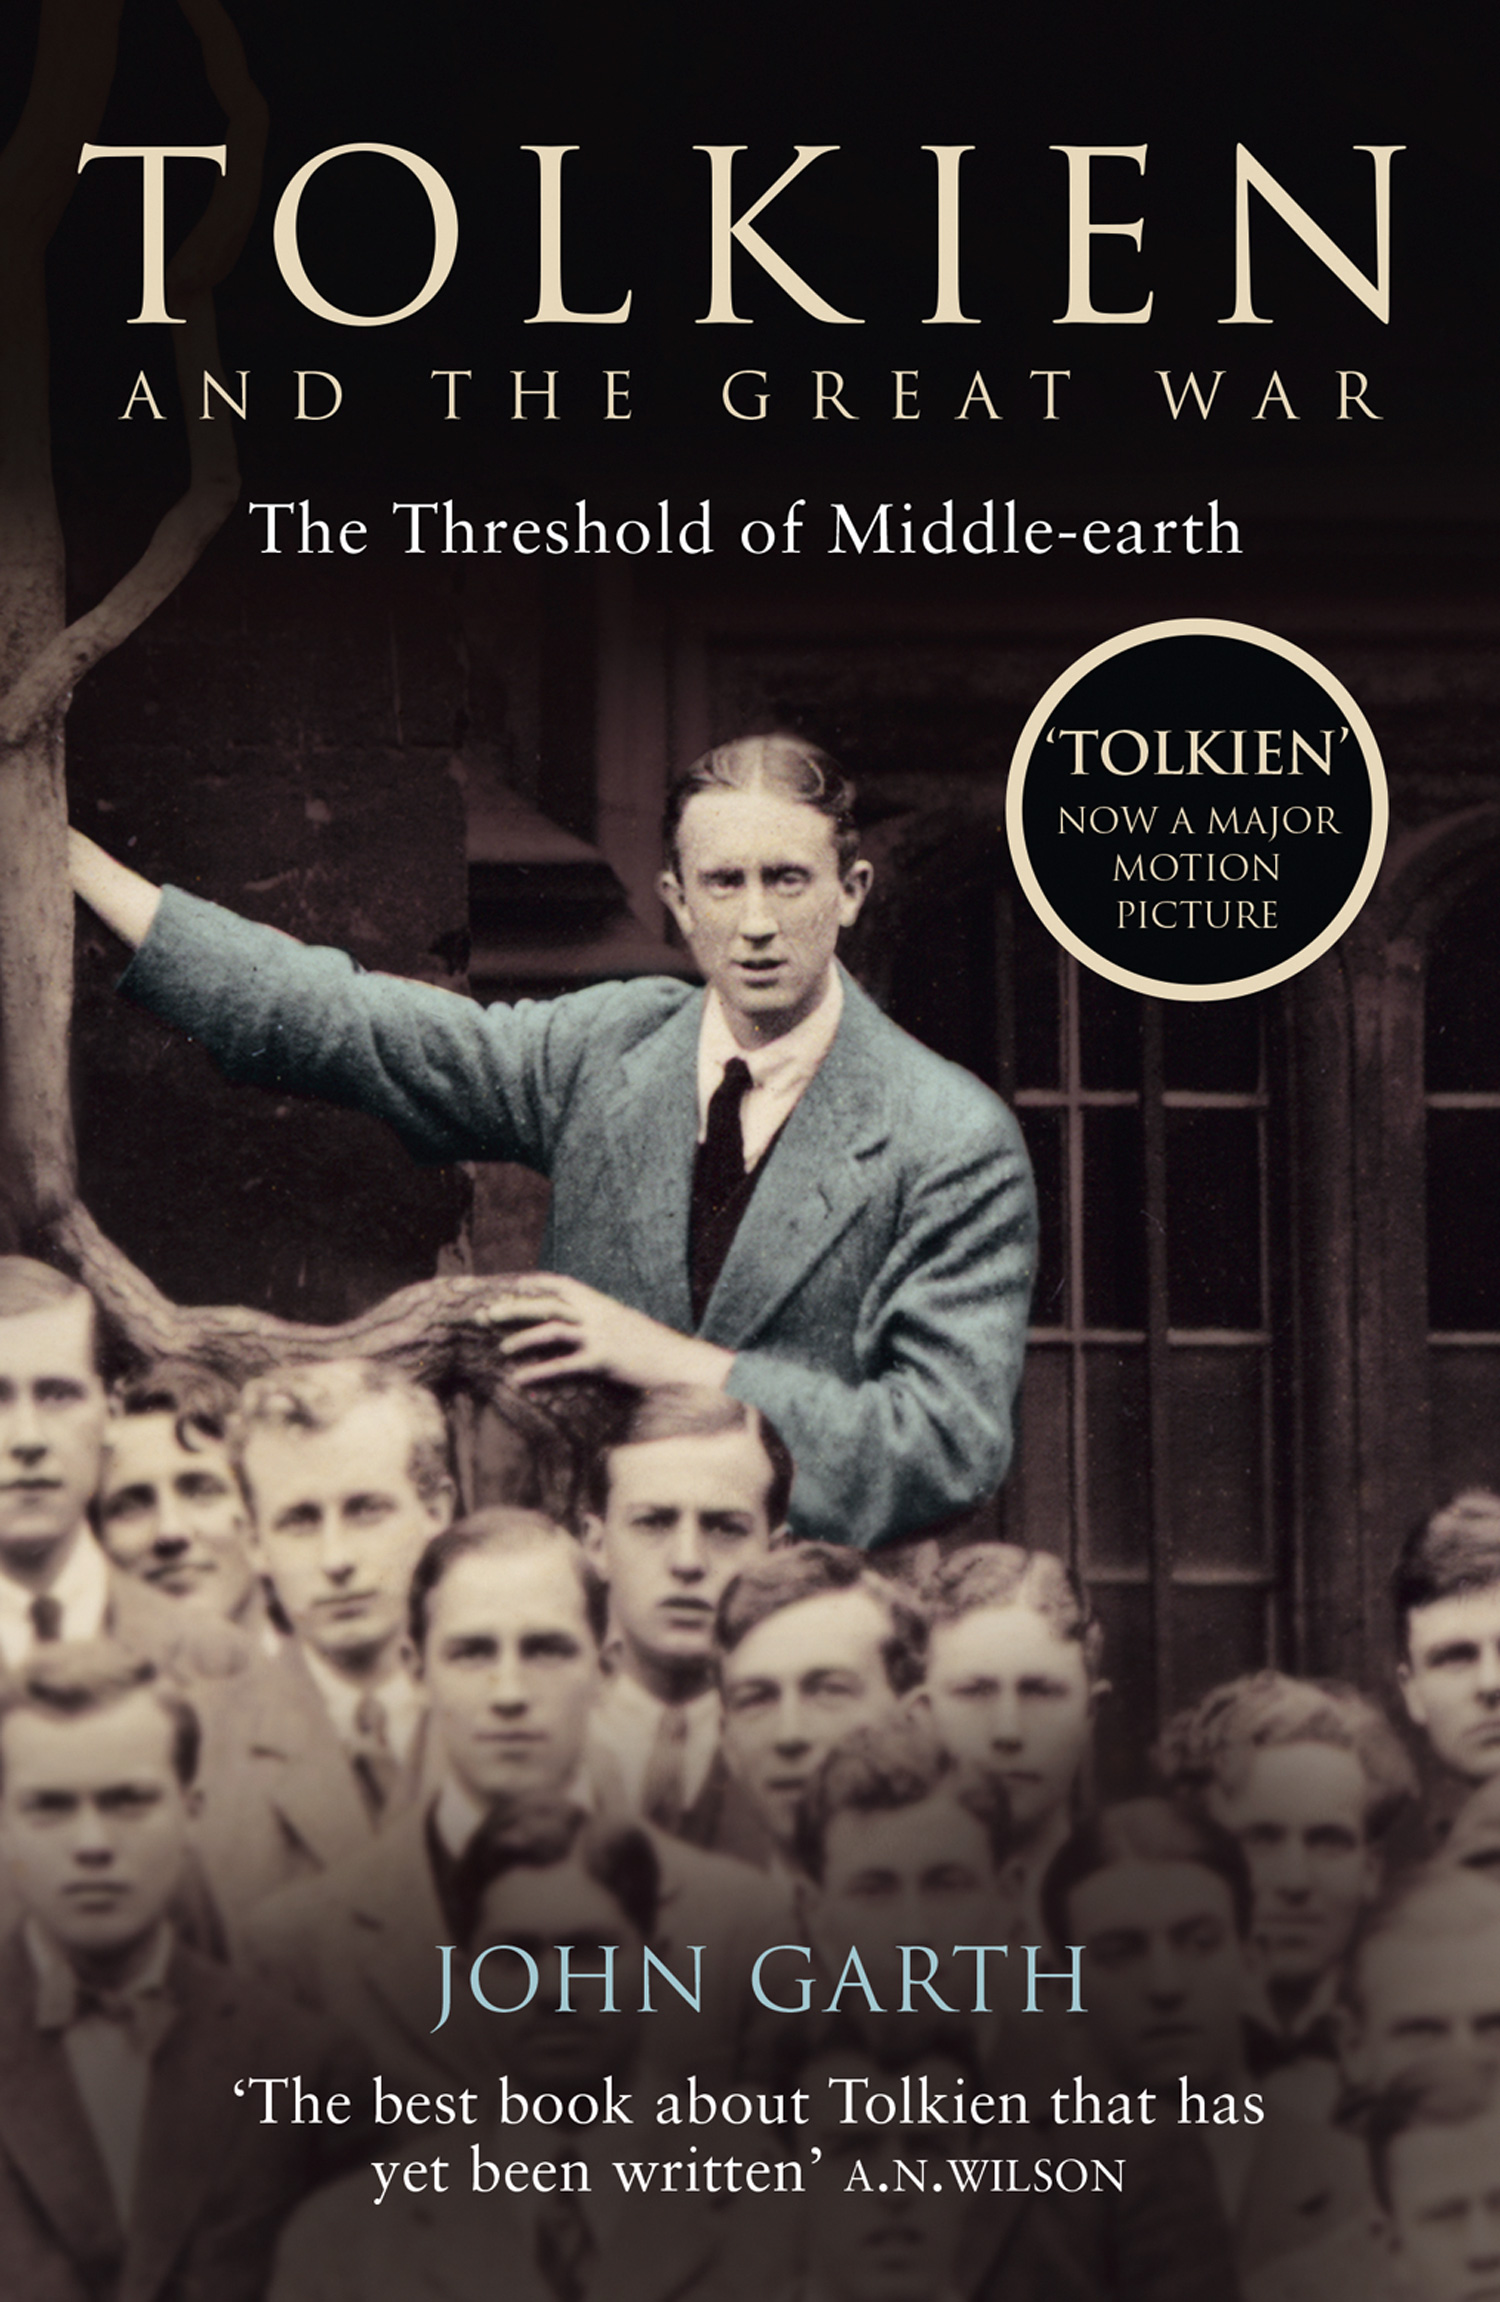 Фото - John Garth Tolkien and the Great War: The Threshold of Middle-earth john george hodgins documentary history of education in upper canada from the passing of the constitutional act of 1791 to the close of rev dr ryerson s administration of the education department in 1876 17